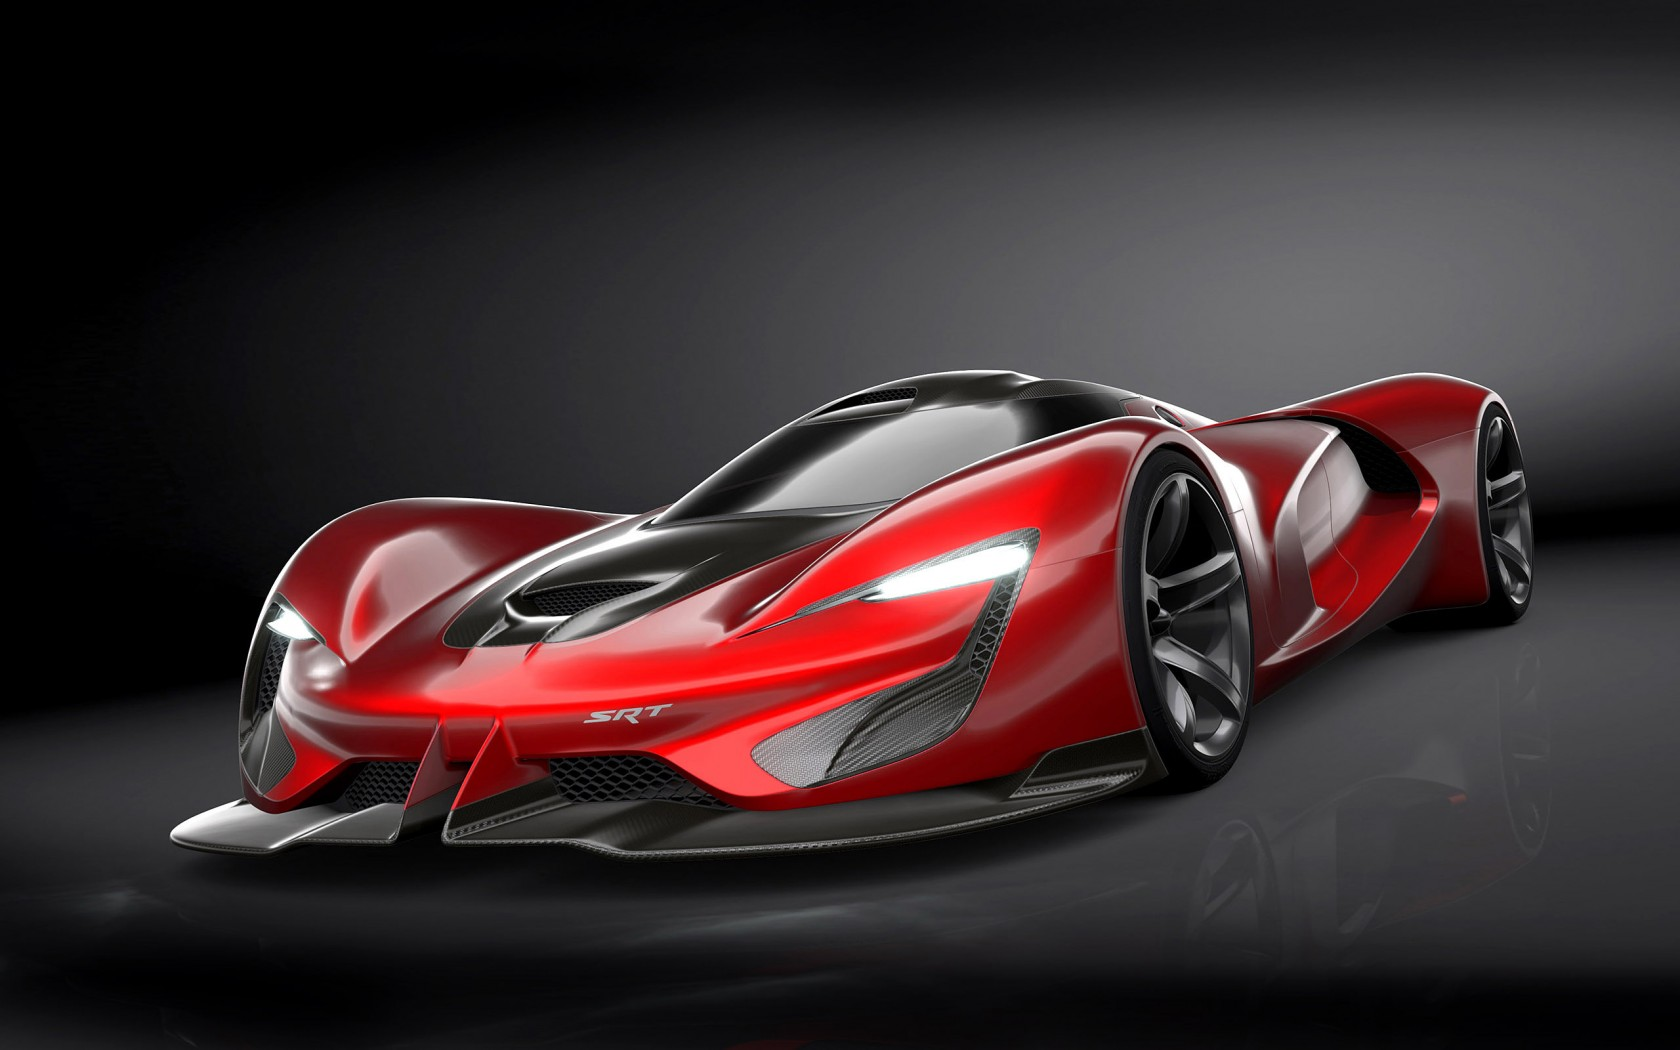 Check prices and deals of sonata se for sale, find a dealership and shop second hand cars online in the usa 2015 Dodge SRT Tomahawk Wallpaper | HD Car Wallpapers | ID